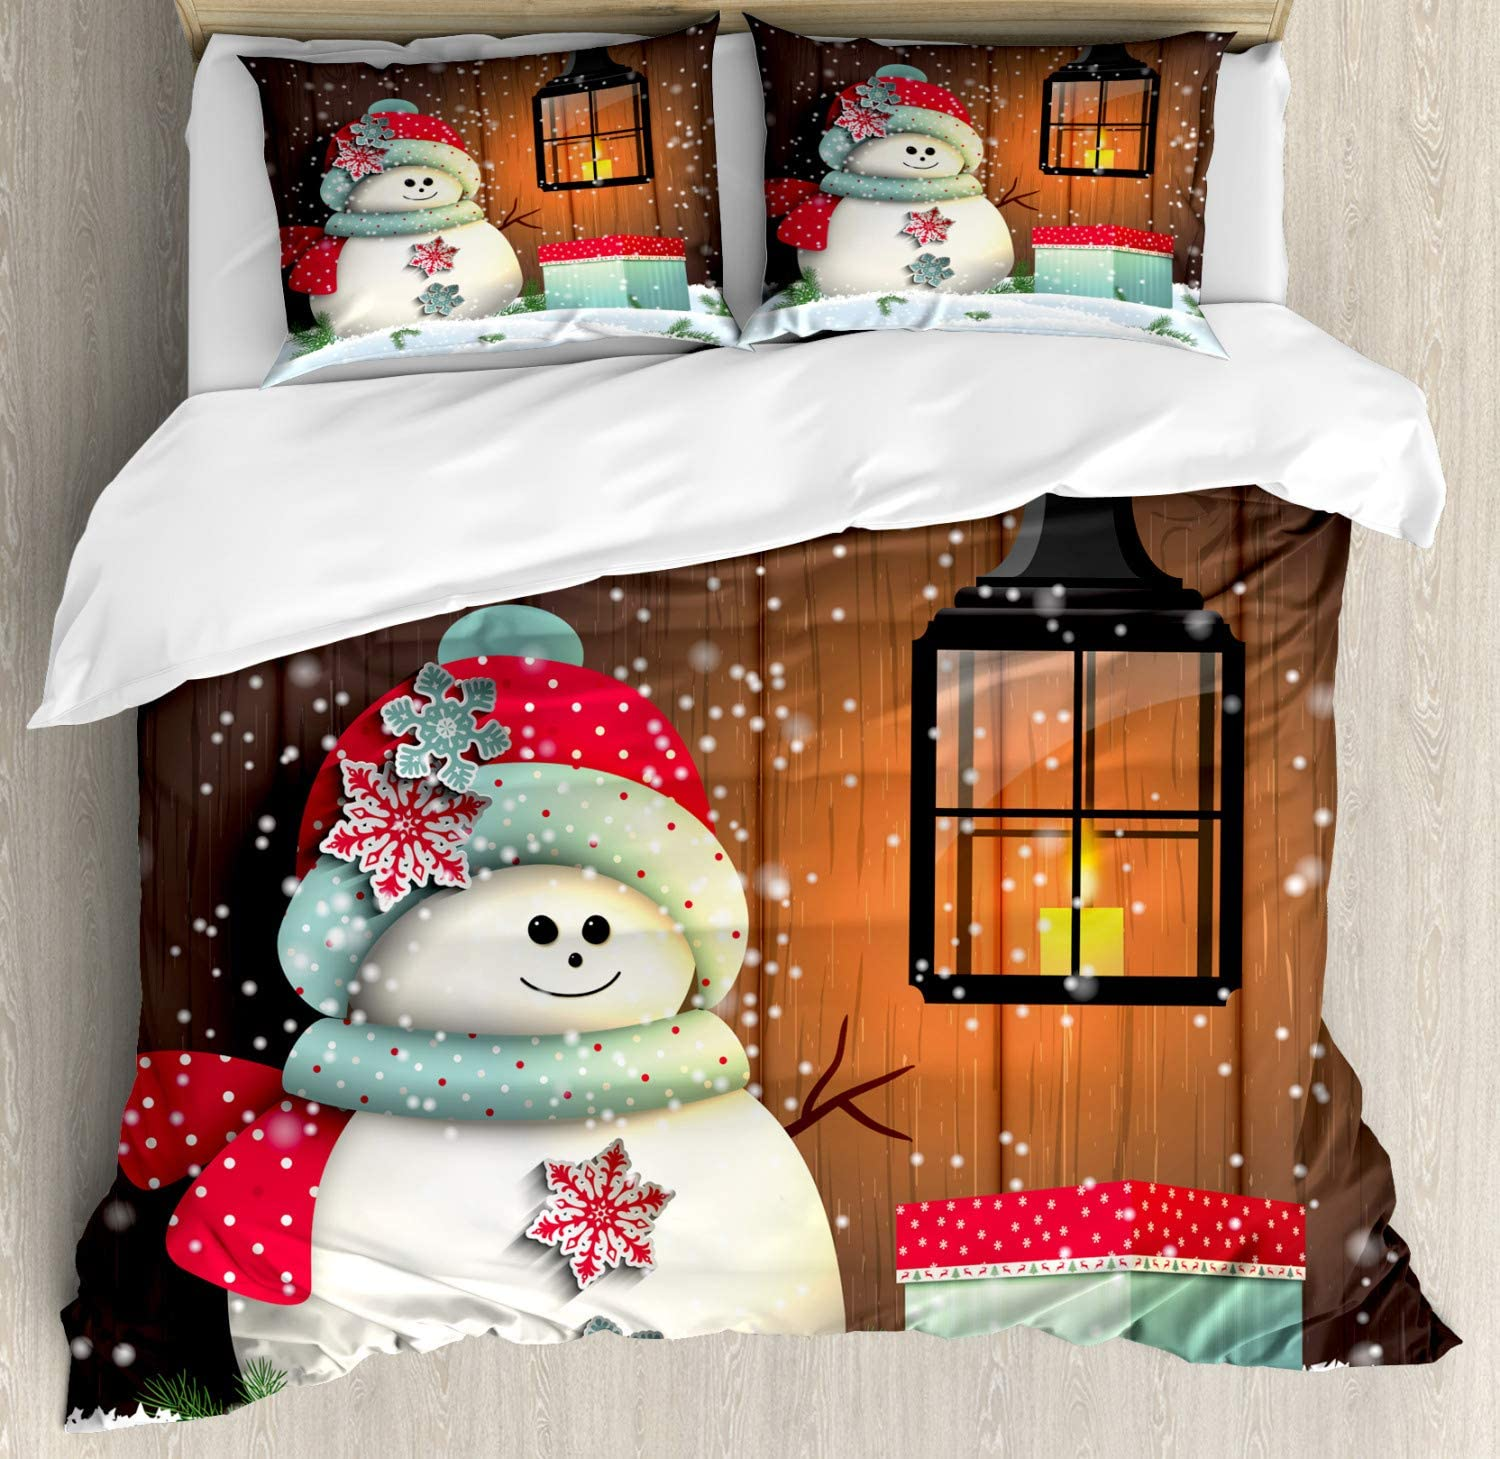 Ambesonne Christmas Duvet Cover Set, Snowman with Santa Hat in The Garden with a Gift Box and Lantern Image, Decorative 3 Piece Bedding Set with 2 Pillow Shams, California King, White Brown